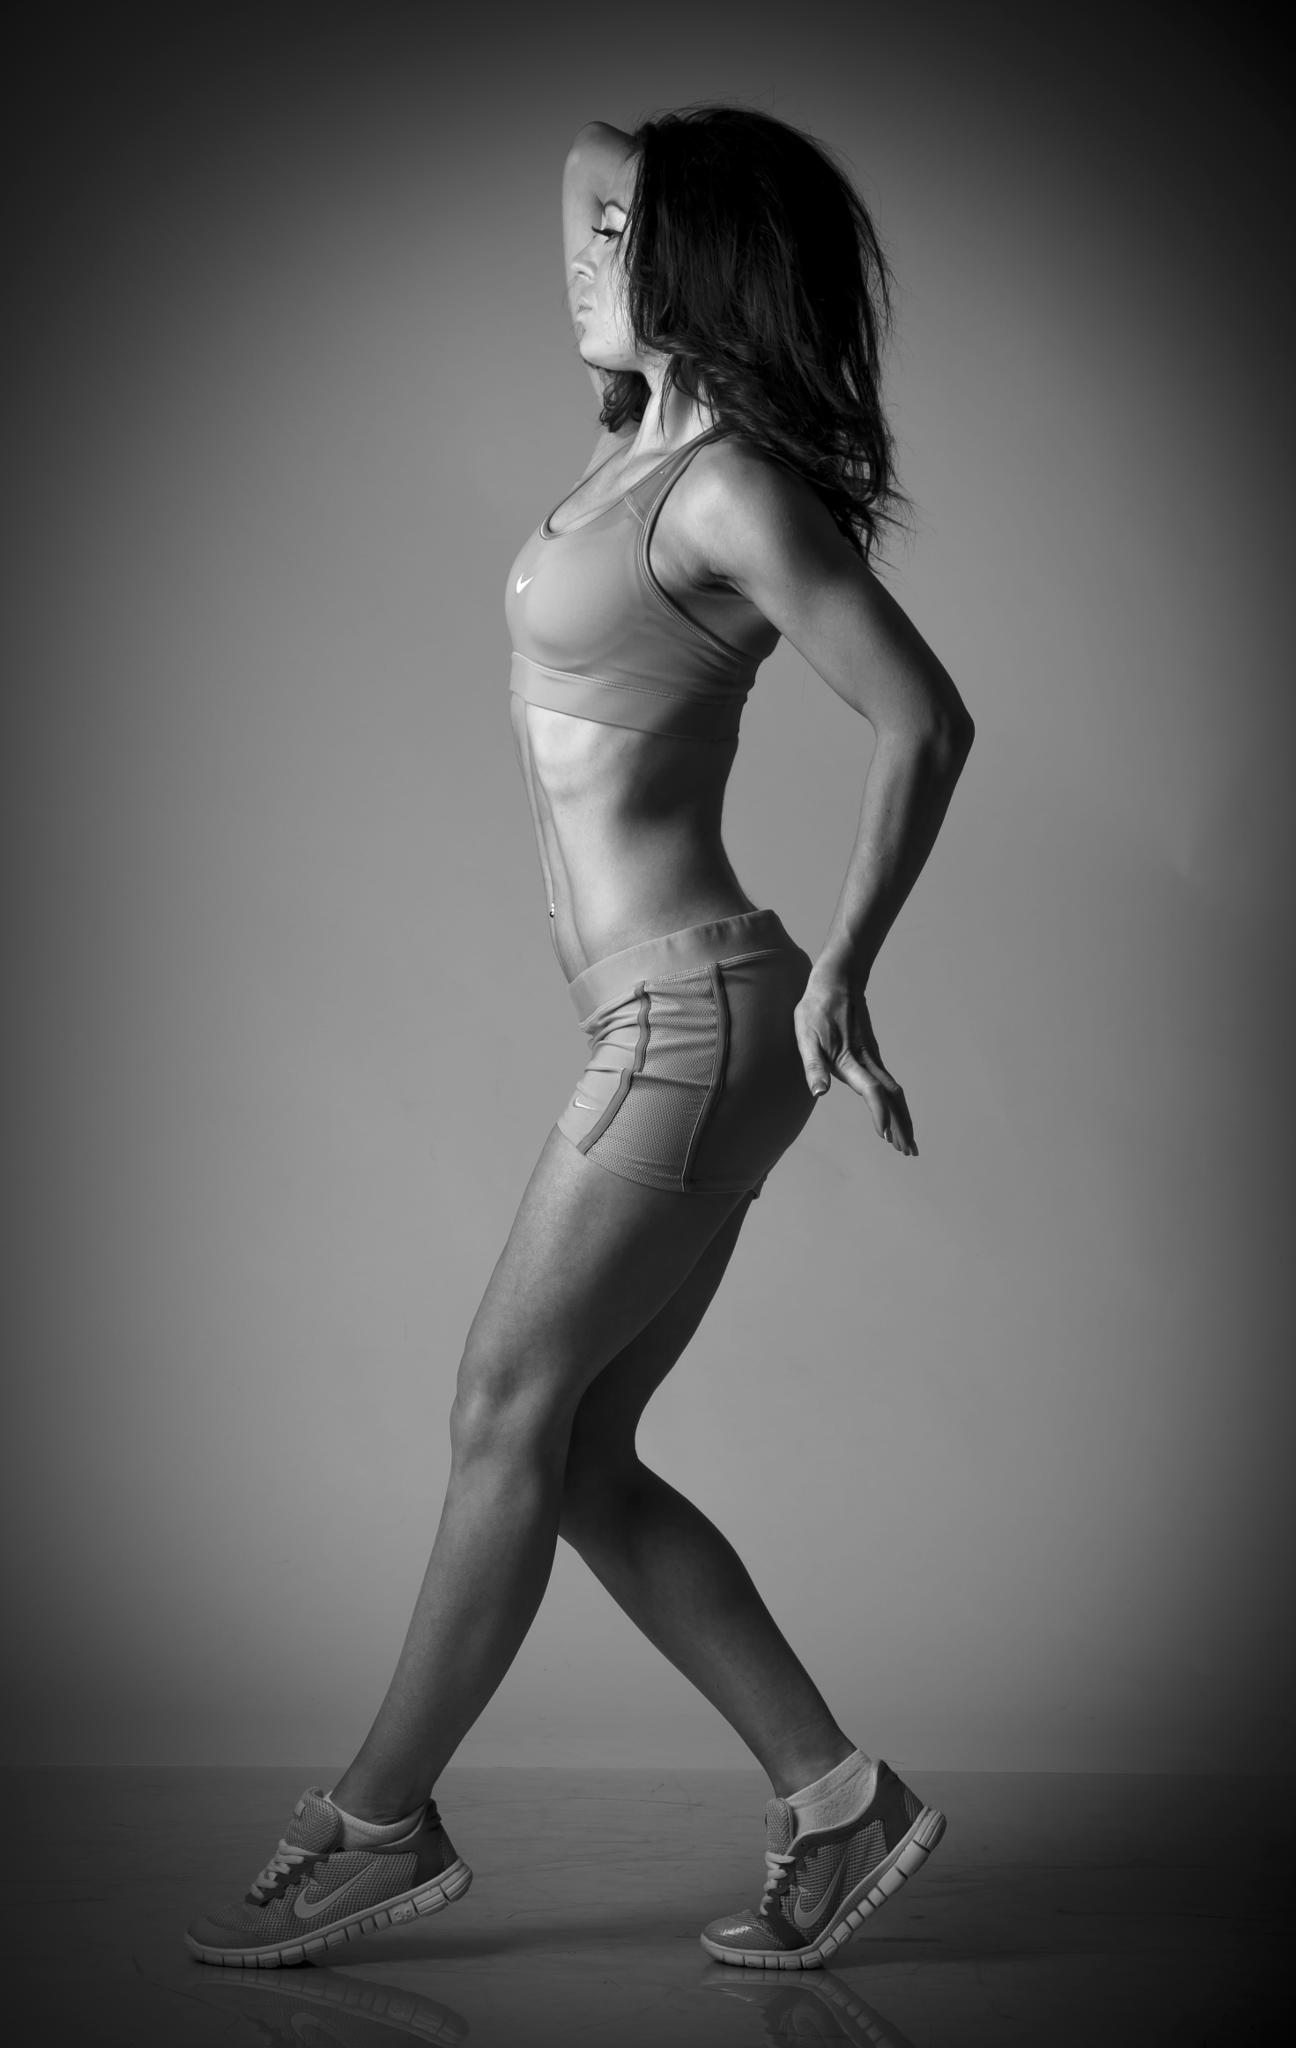 Fitness Model 2 by Tenacious_T